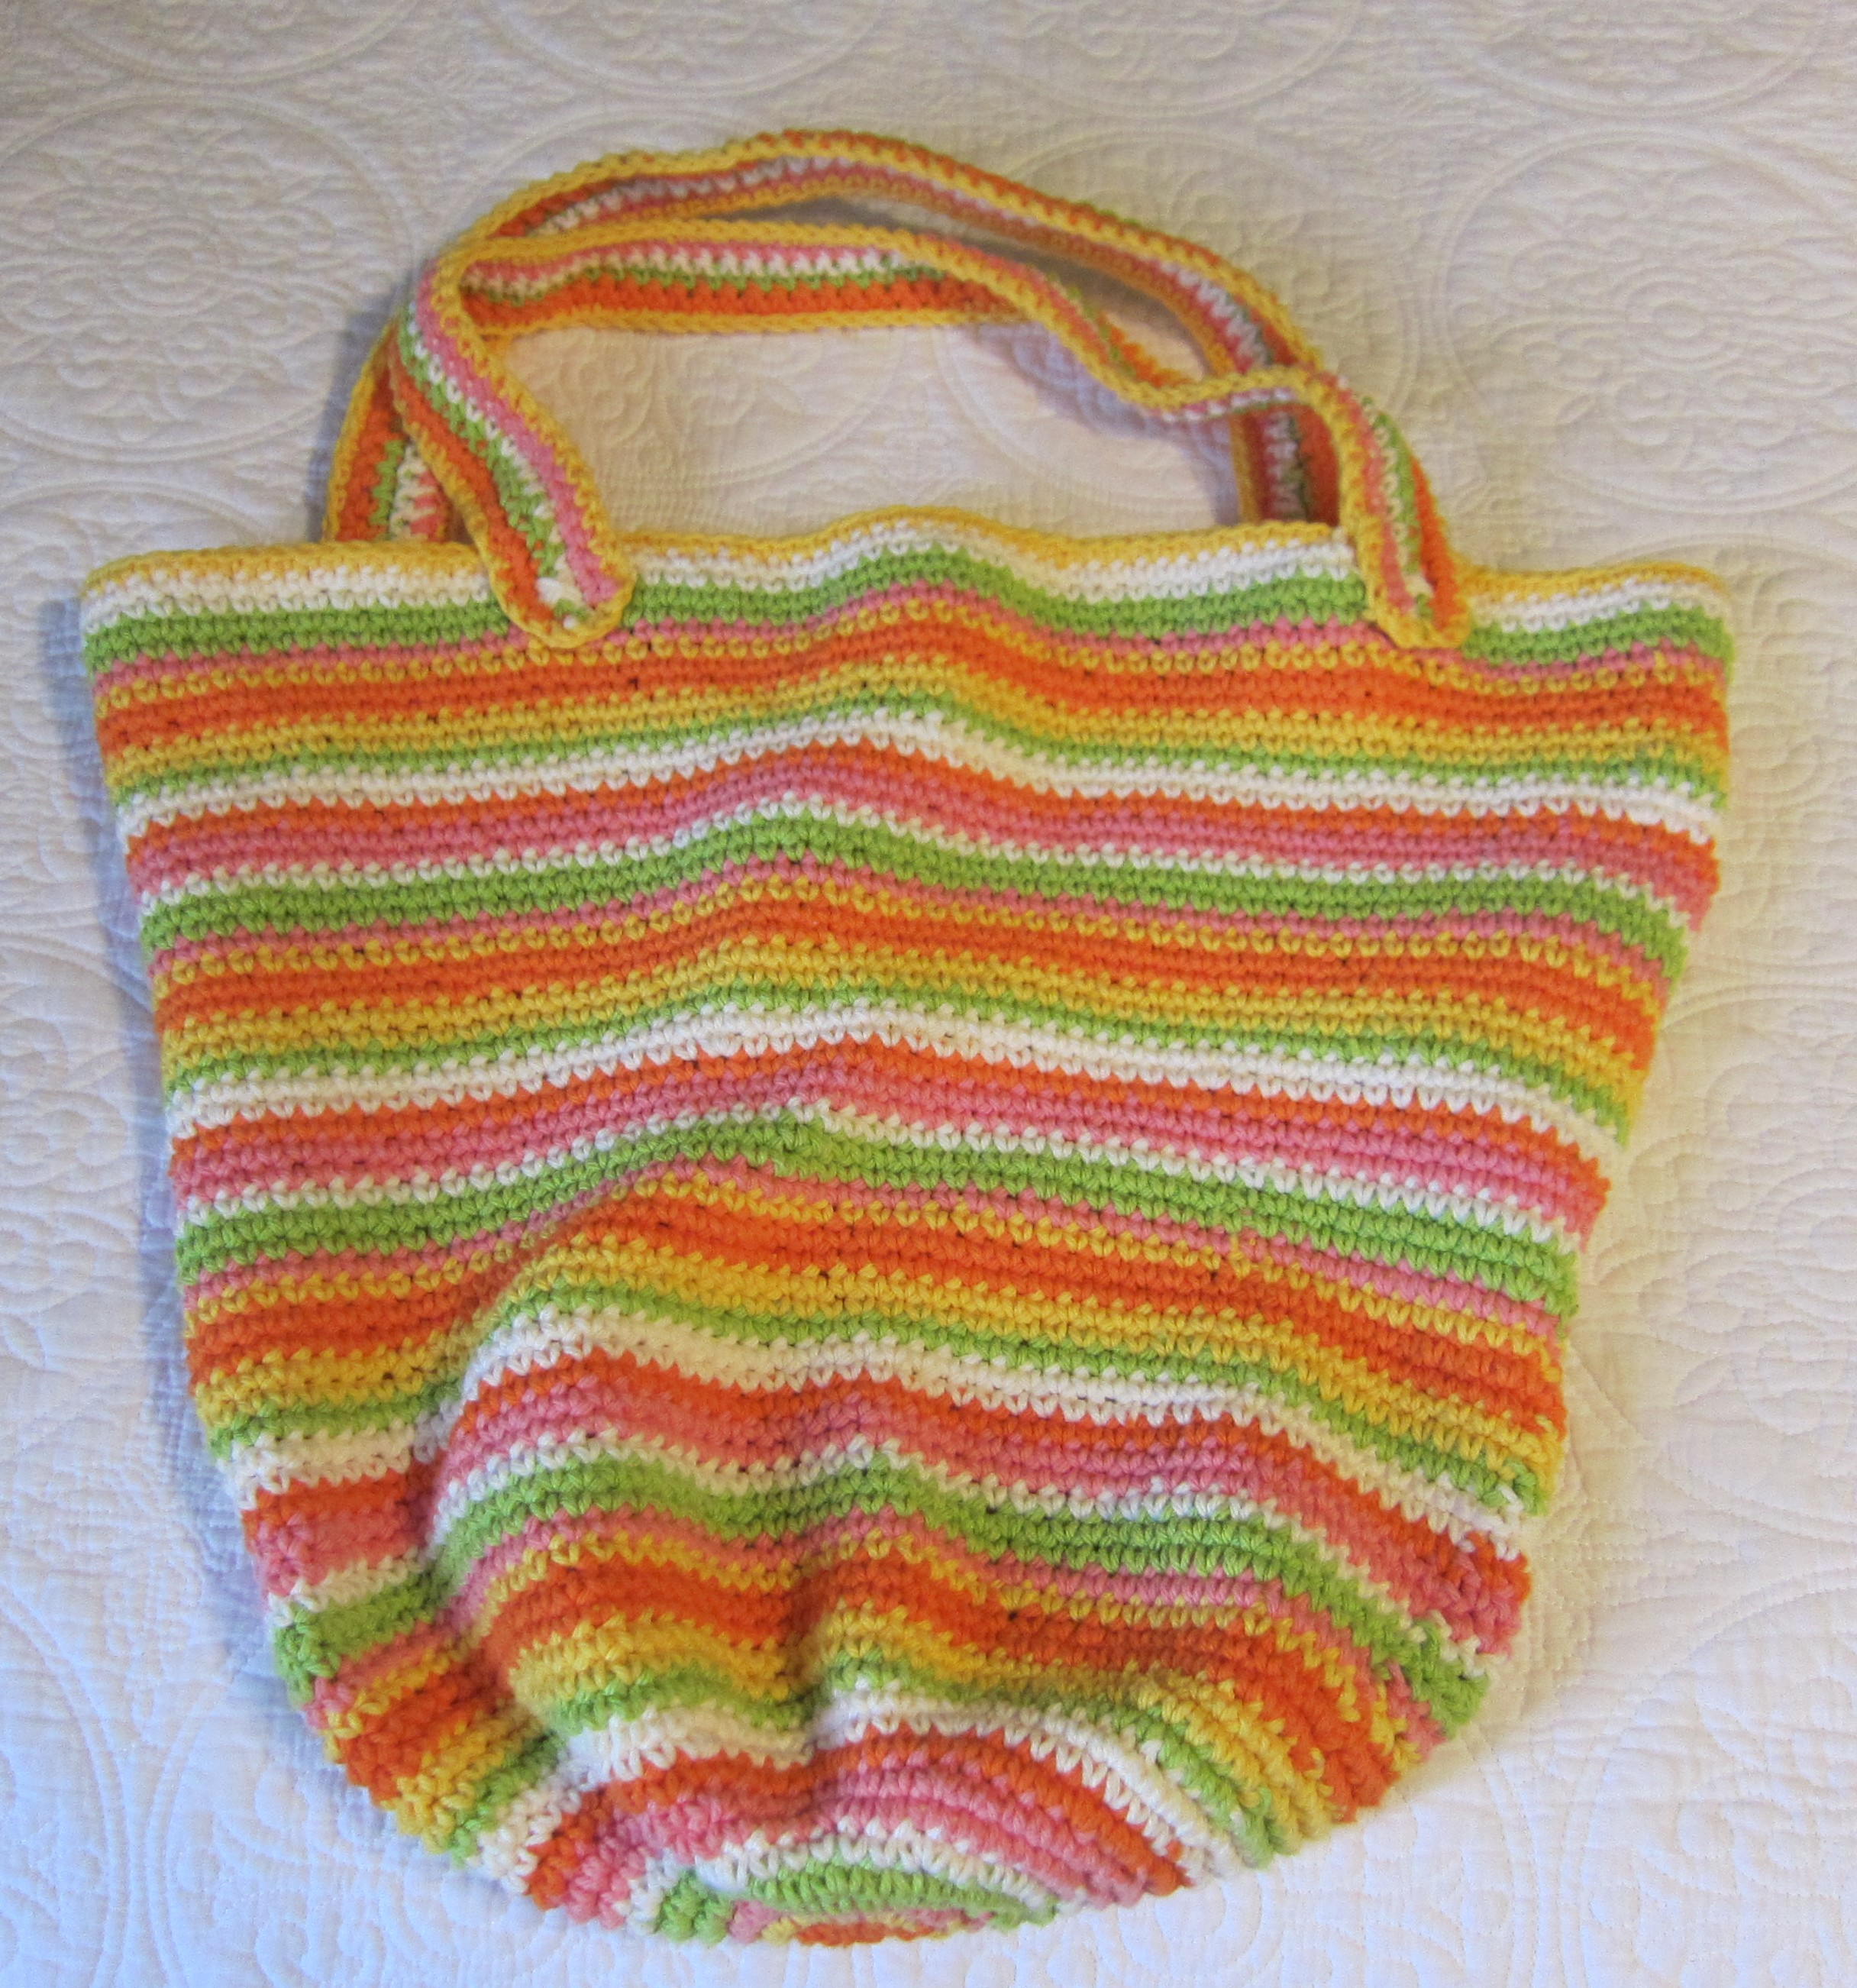 Crochet Beach Bag/Hobo Bag made with Cotton Yarn in Various Colors ...